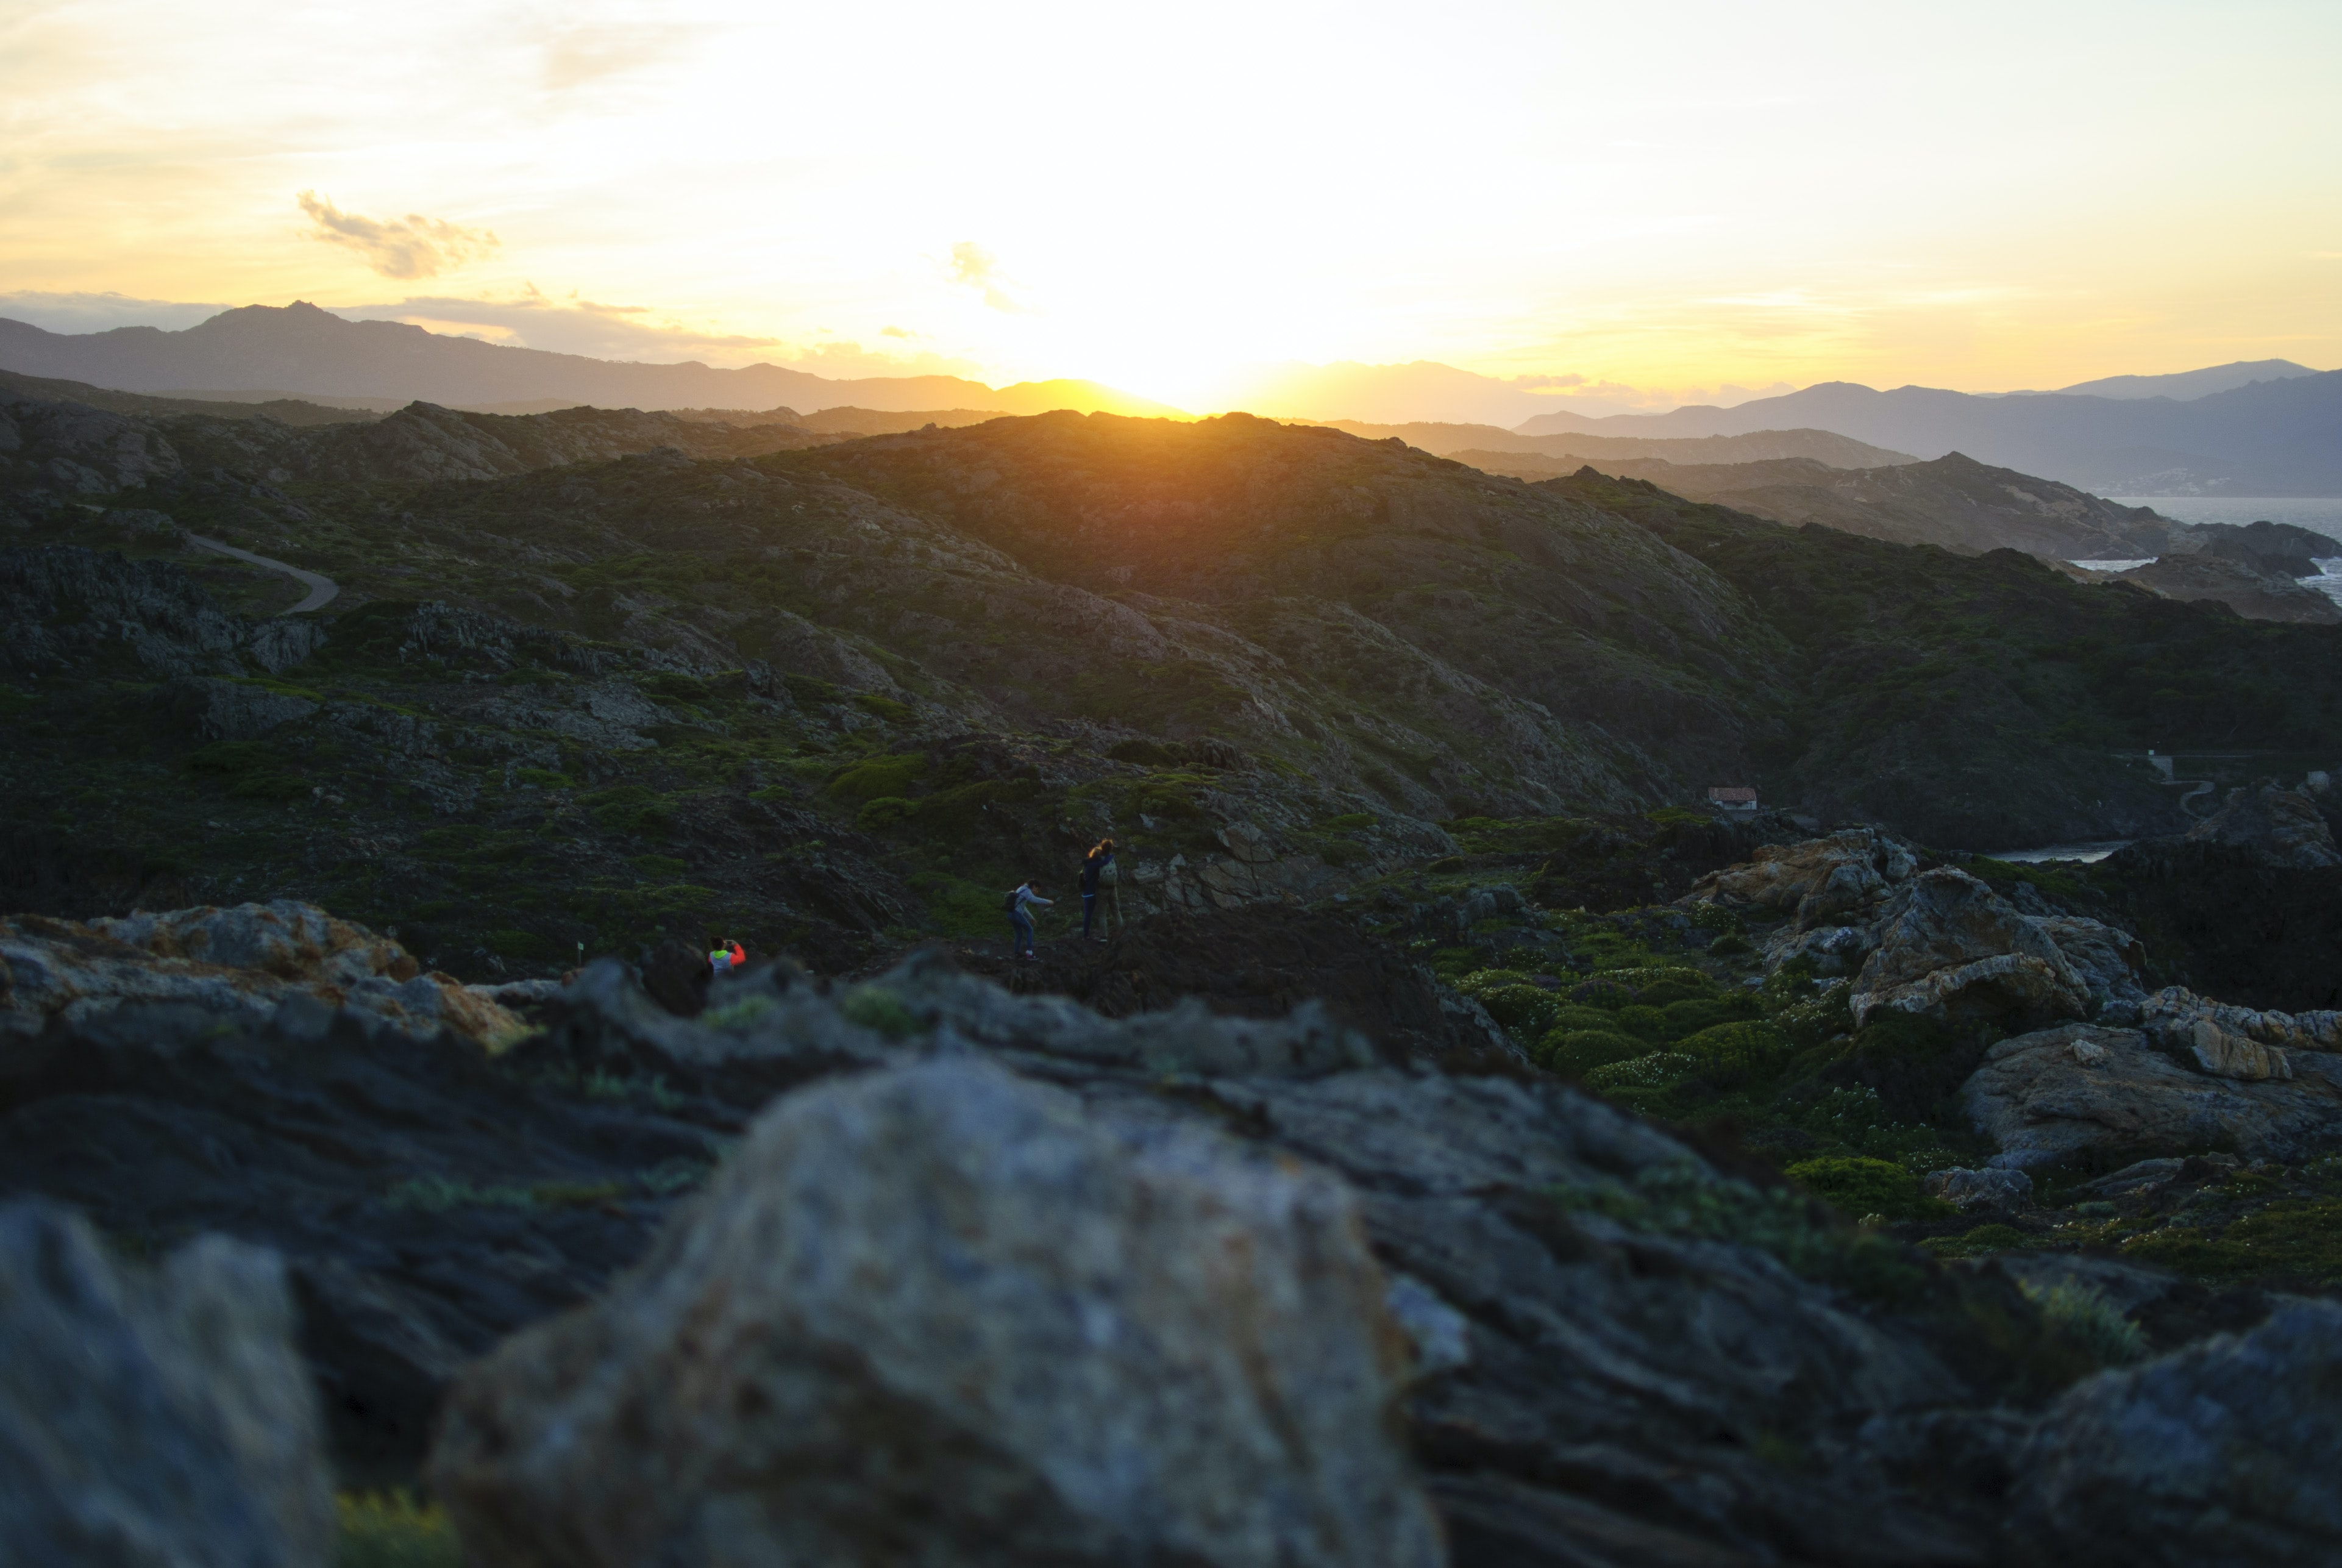 A small group of hikers walking rocky terrain as sun sets over distant hills